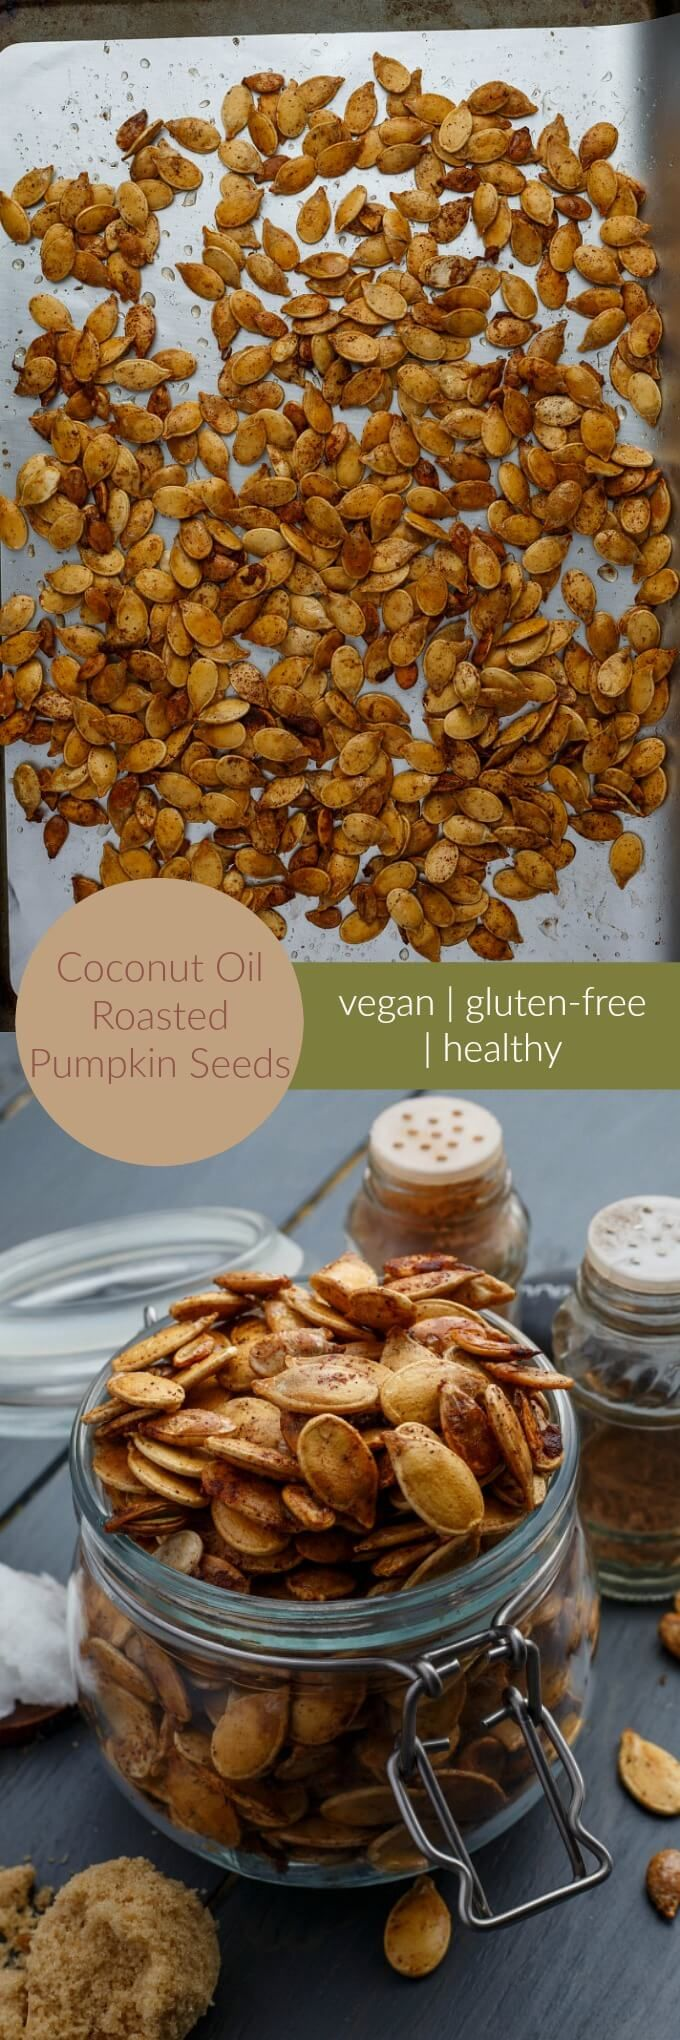 Coconut Oil Roasted Pumpkin Seeds | http://thecookiewriter.com | @thecookiewriter | #pumpkin #vegan | Healthier than the traditional route (but go ahead and use butter if you like!) these coconut oil roasted pumpkin seeds are vegan and gluten-free!